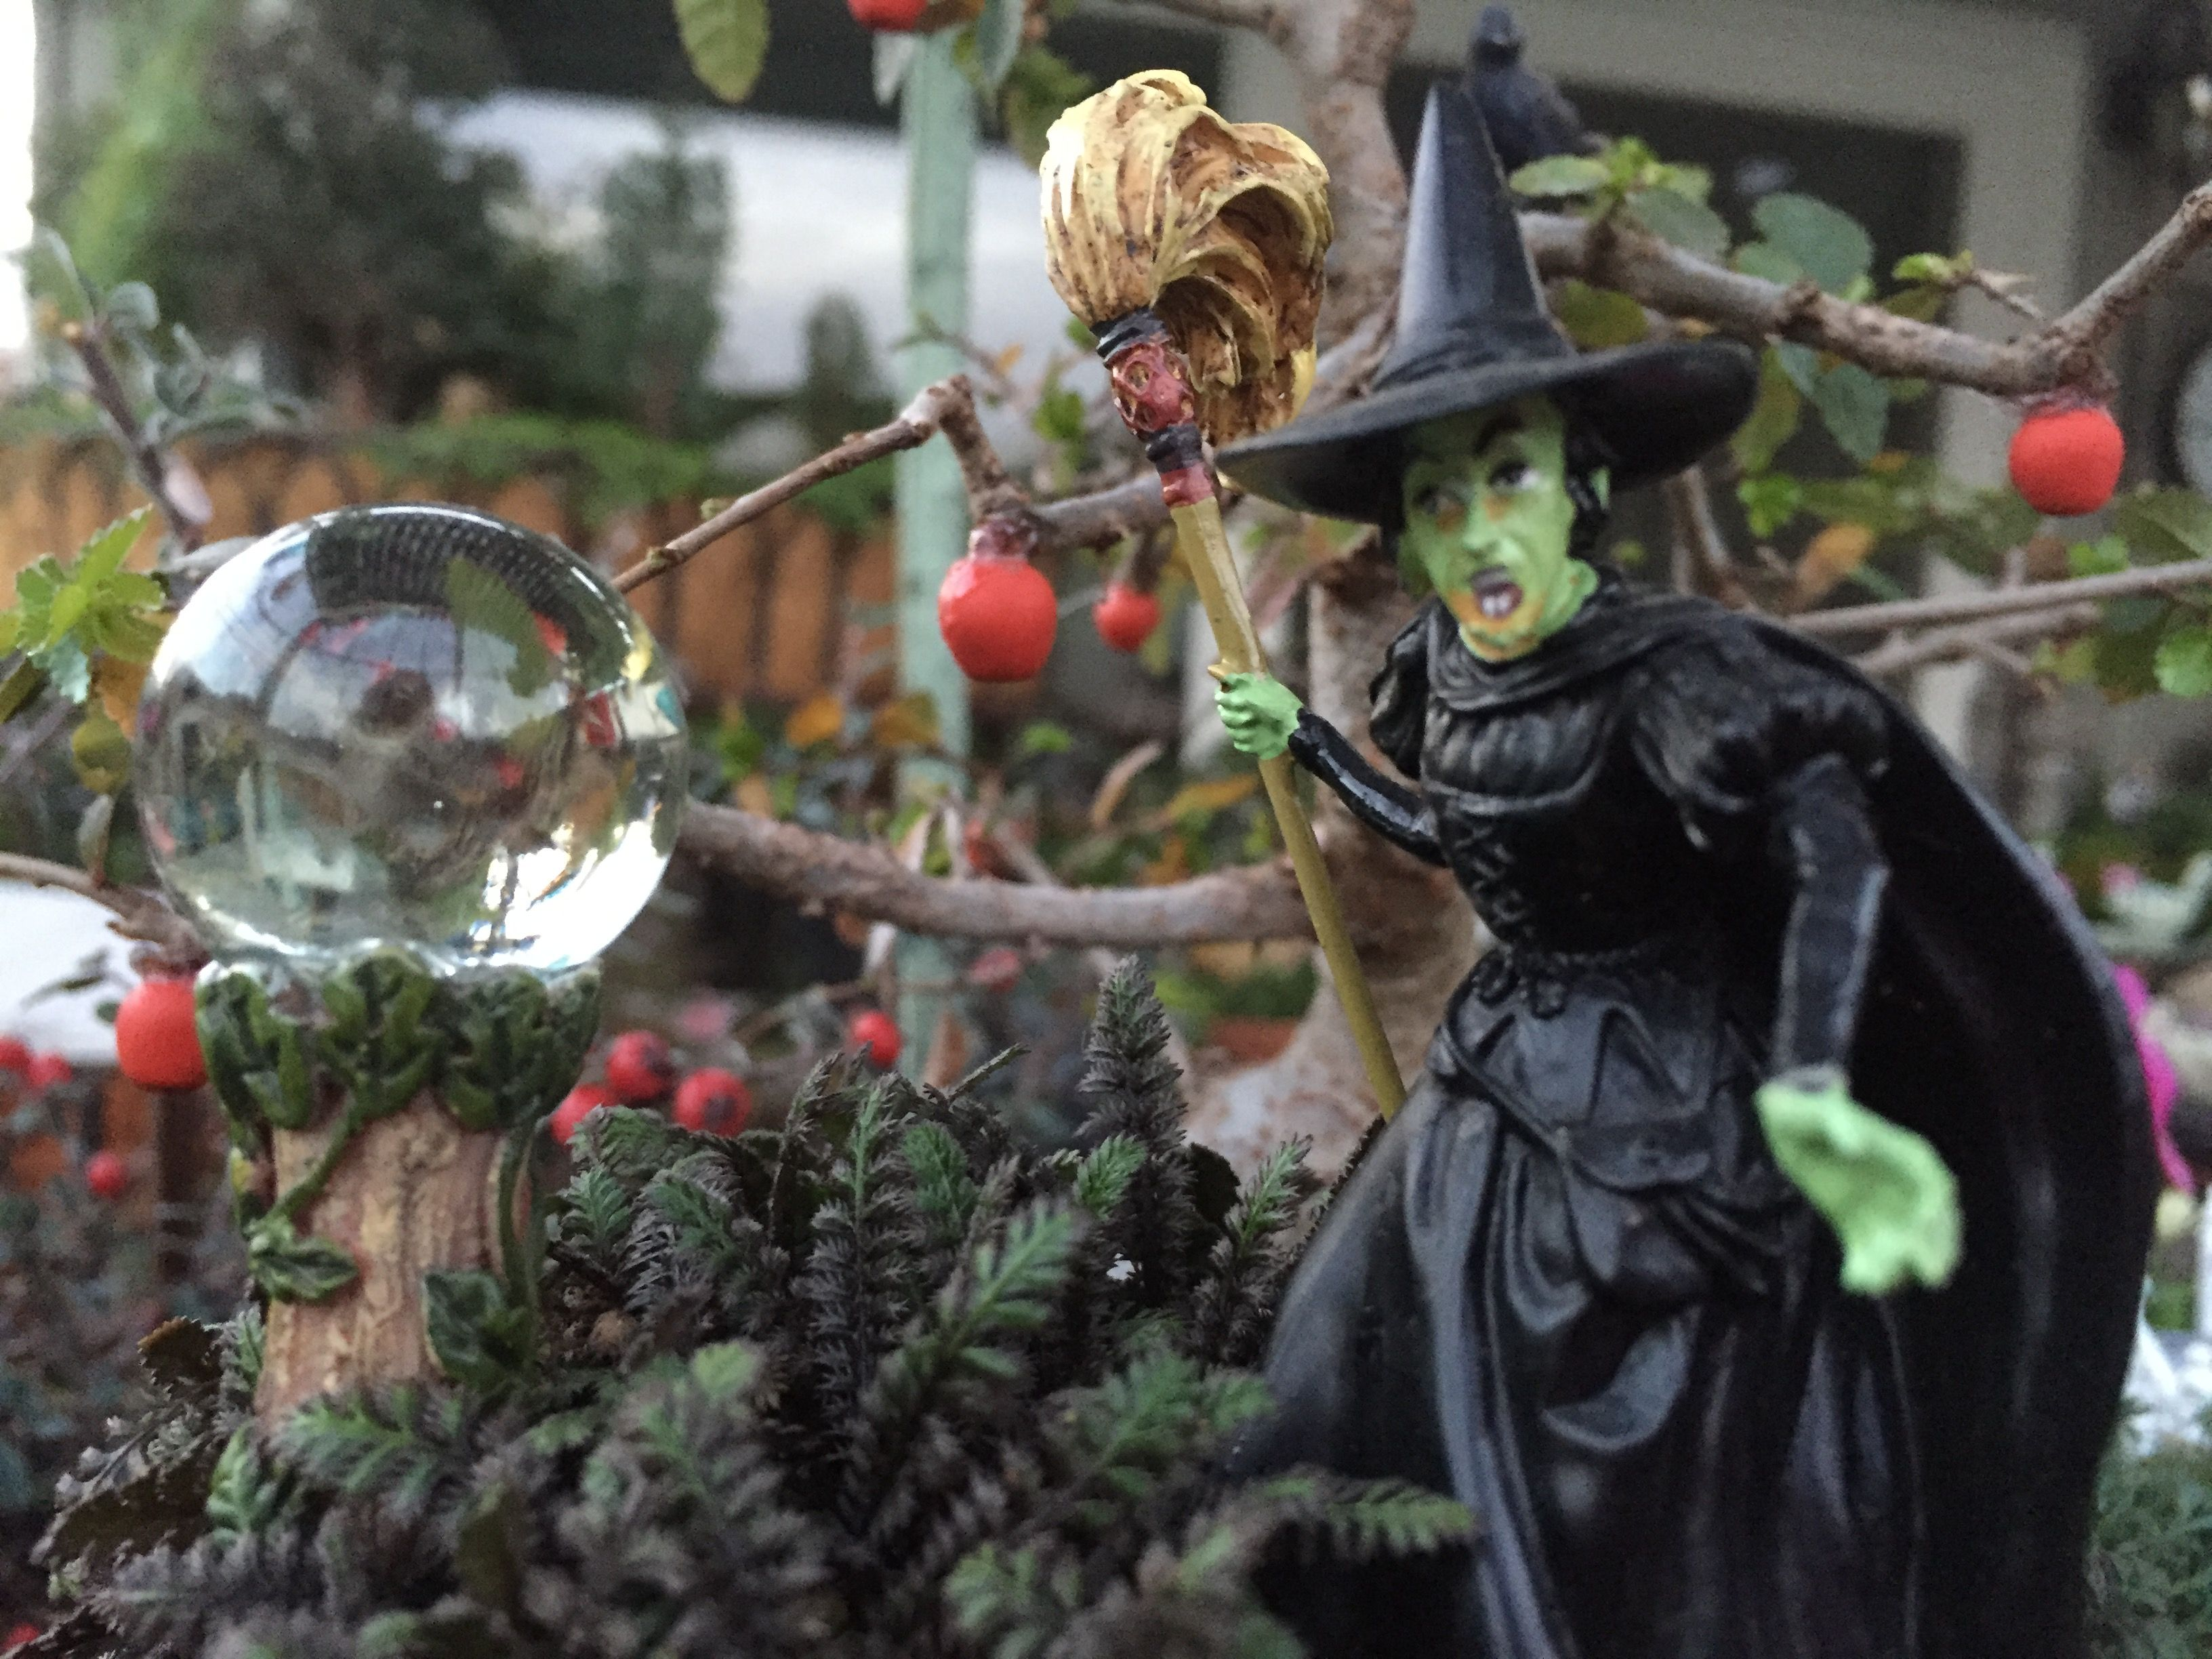 Wizard of oz christmas decorations uk - Miniature Fairy Garden Wizard Of Oz In The Forest Are The Wicked Witch